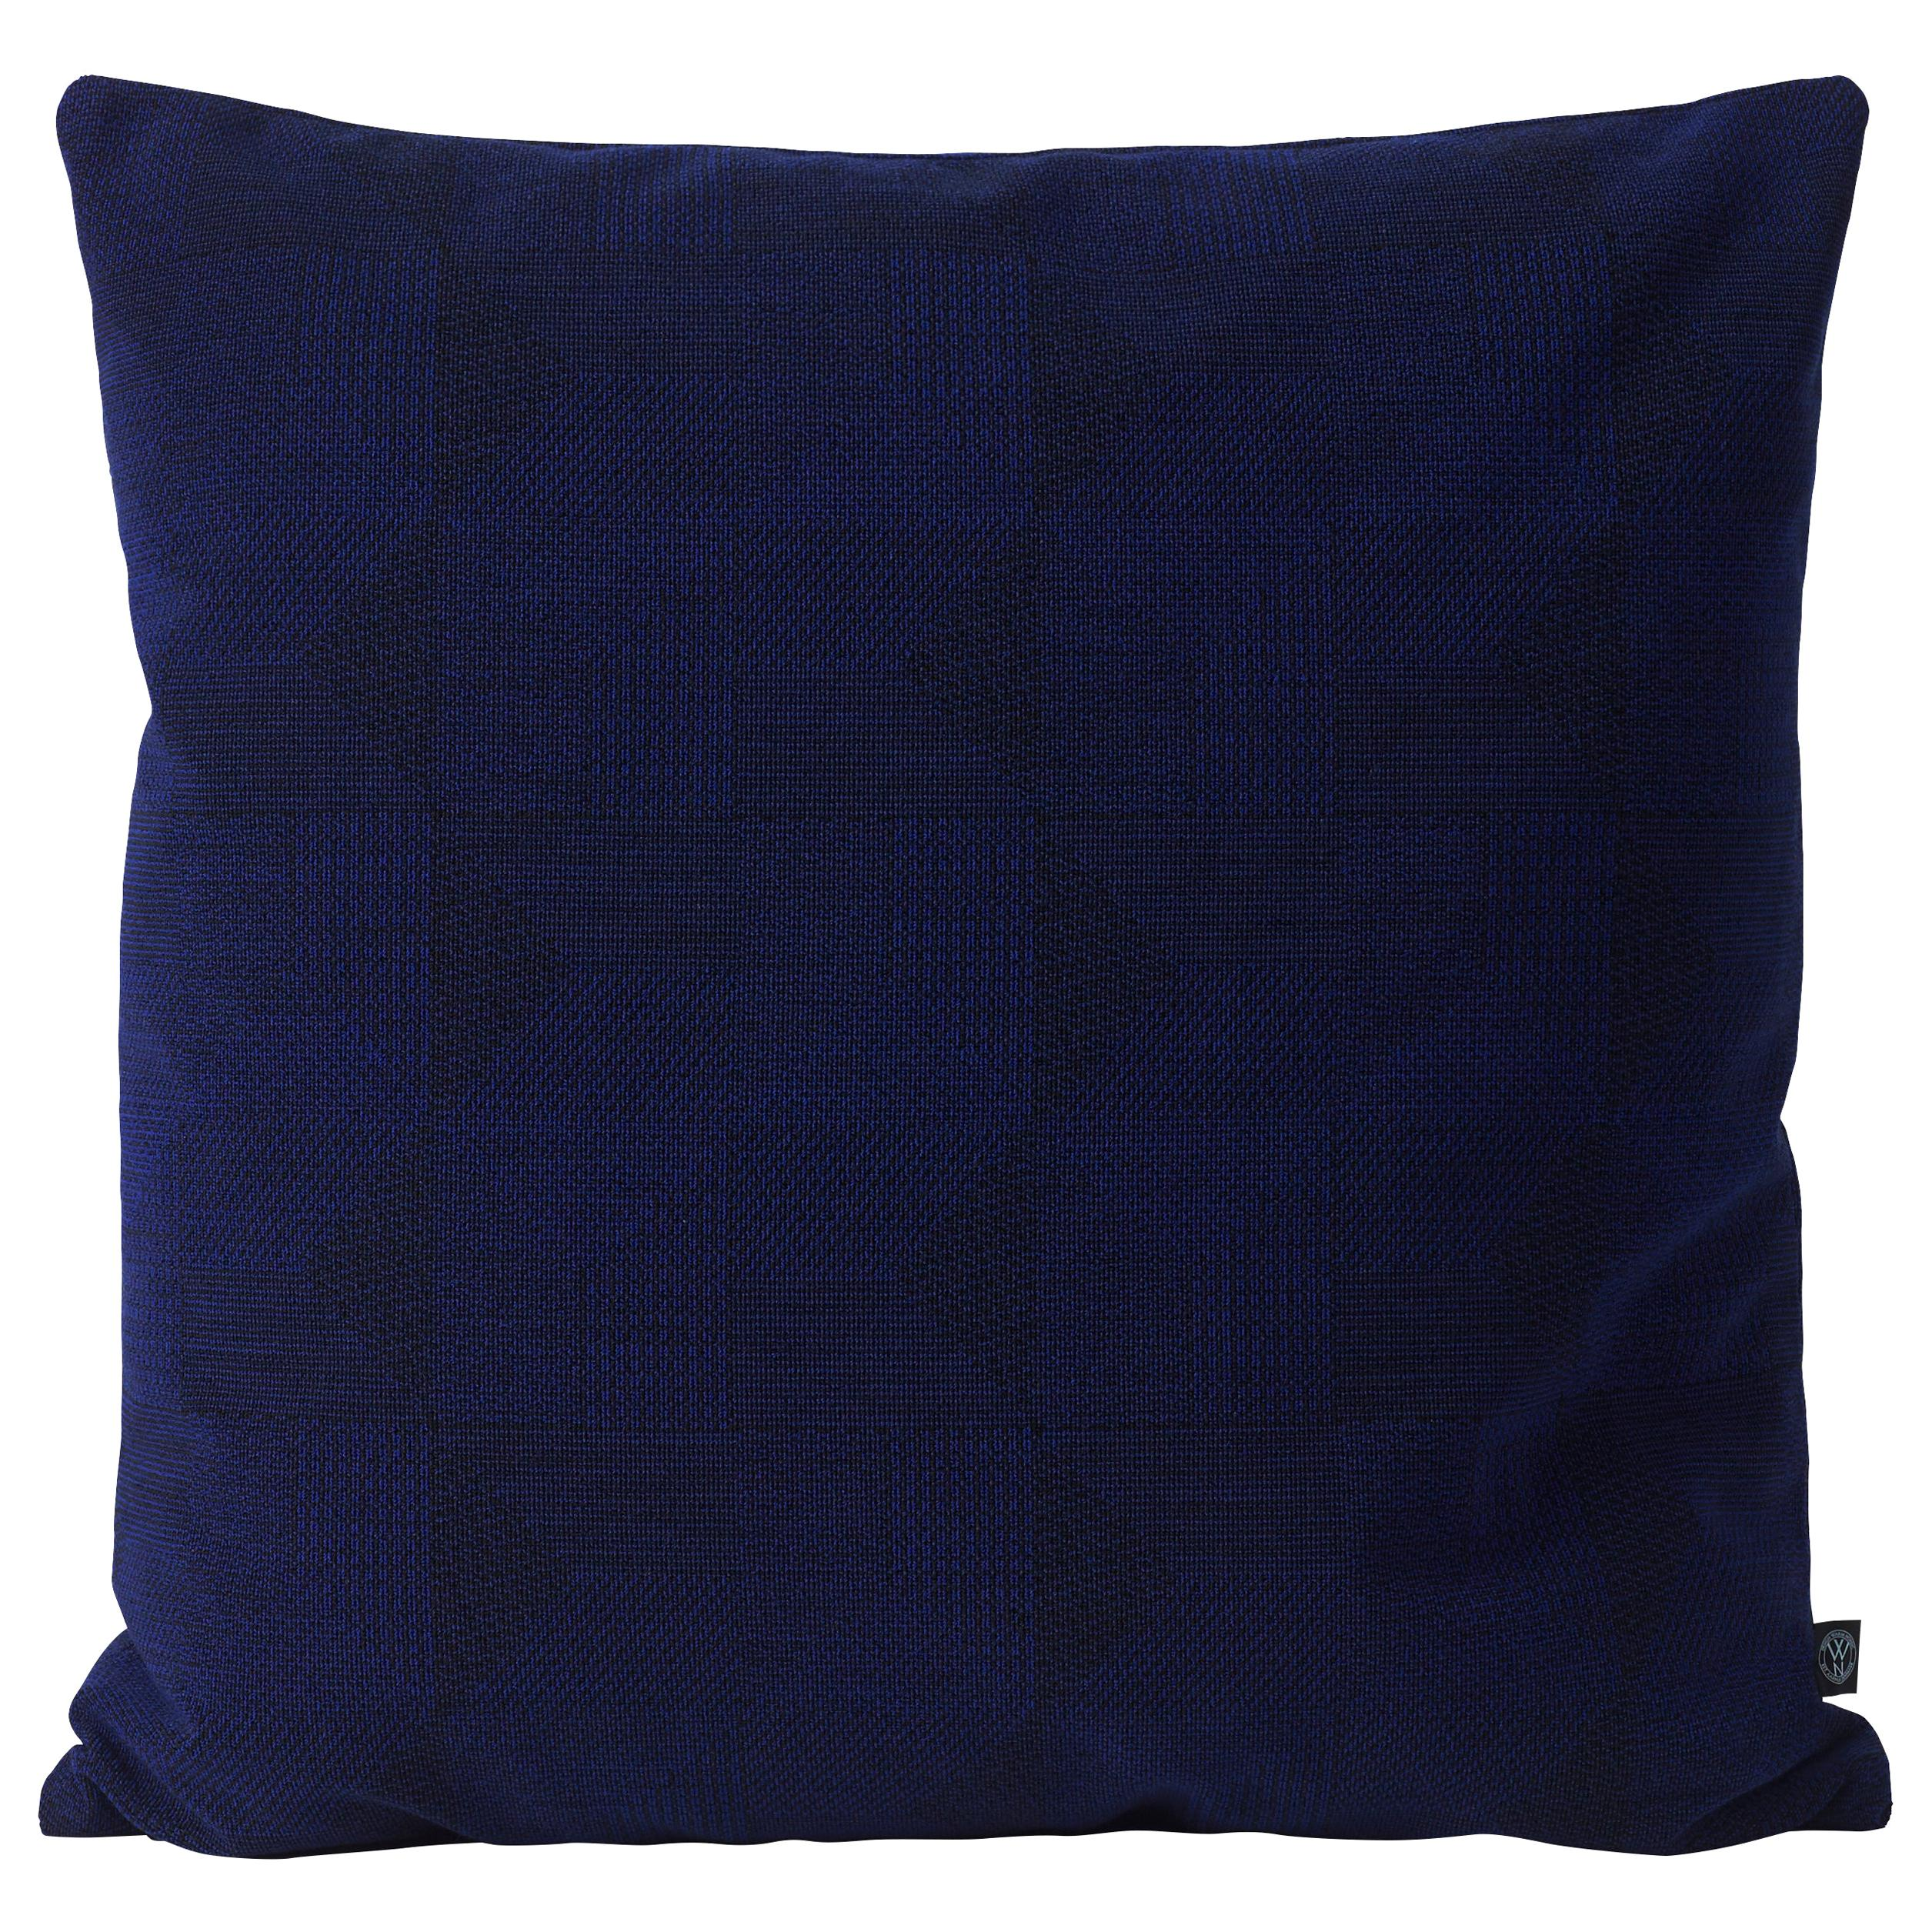 Large Crystal Field Square Cushion or Throw Pillow by Warm Nordic